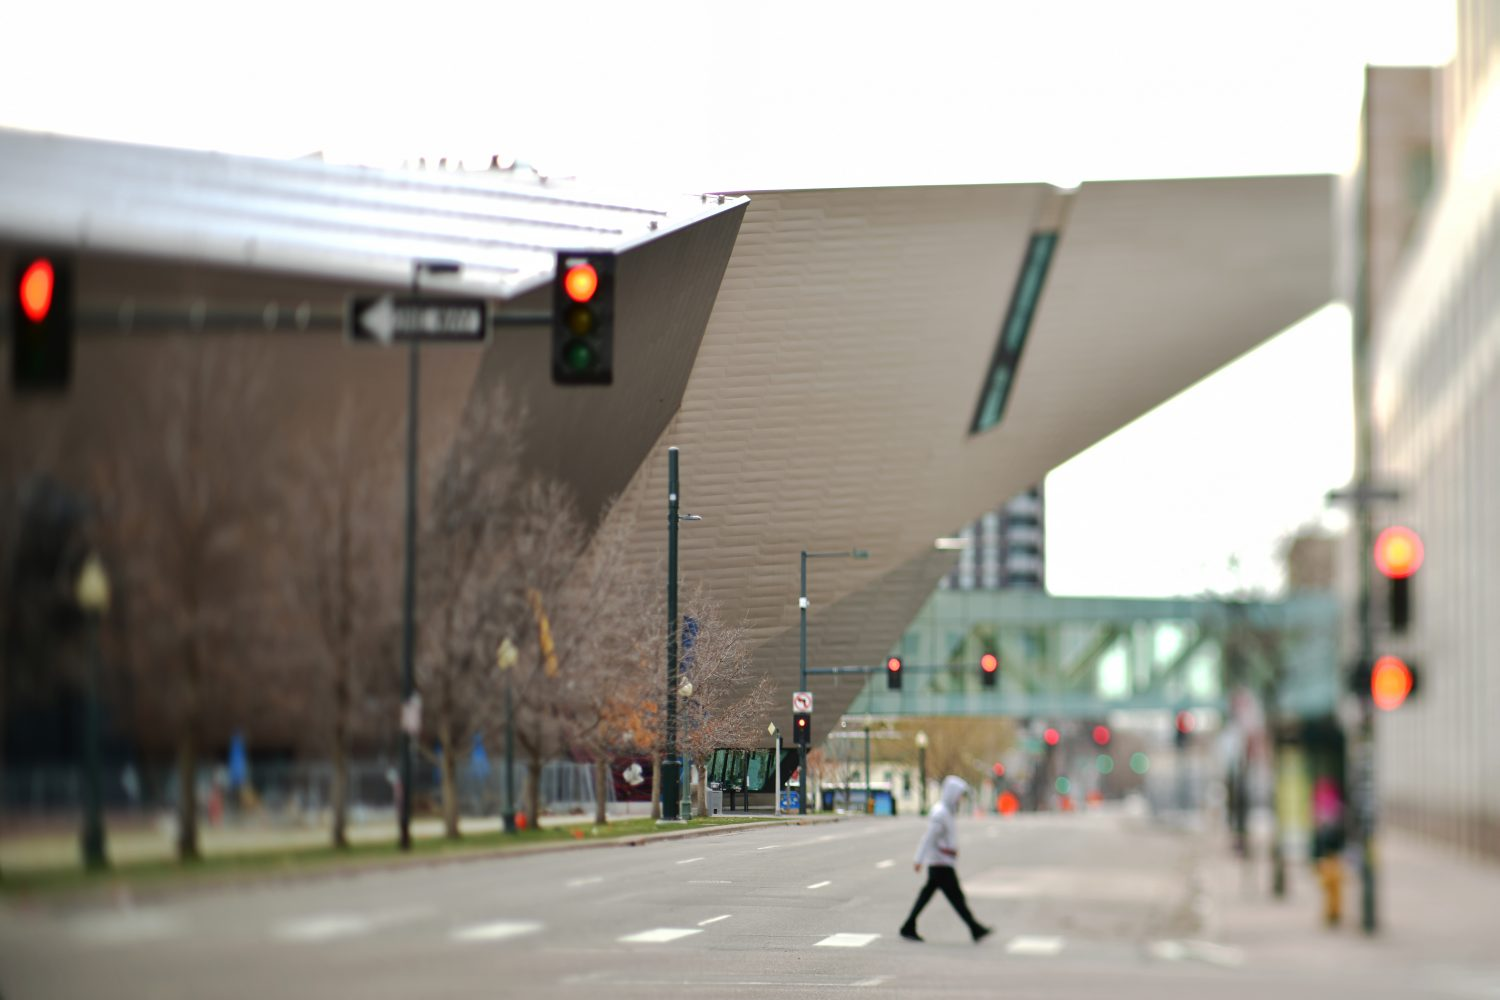 Are museums, cultural institutions open during Denver's level 3 coronavirus response? 1